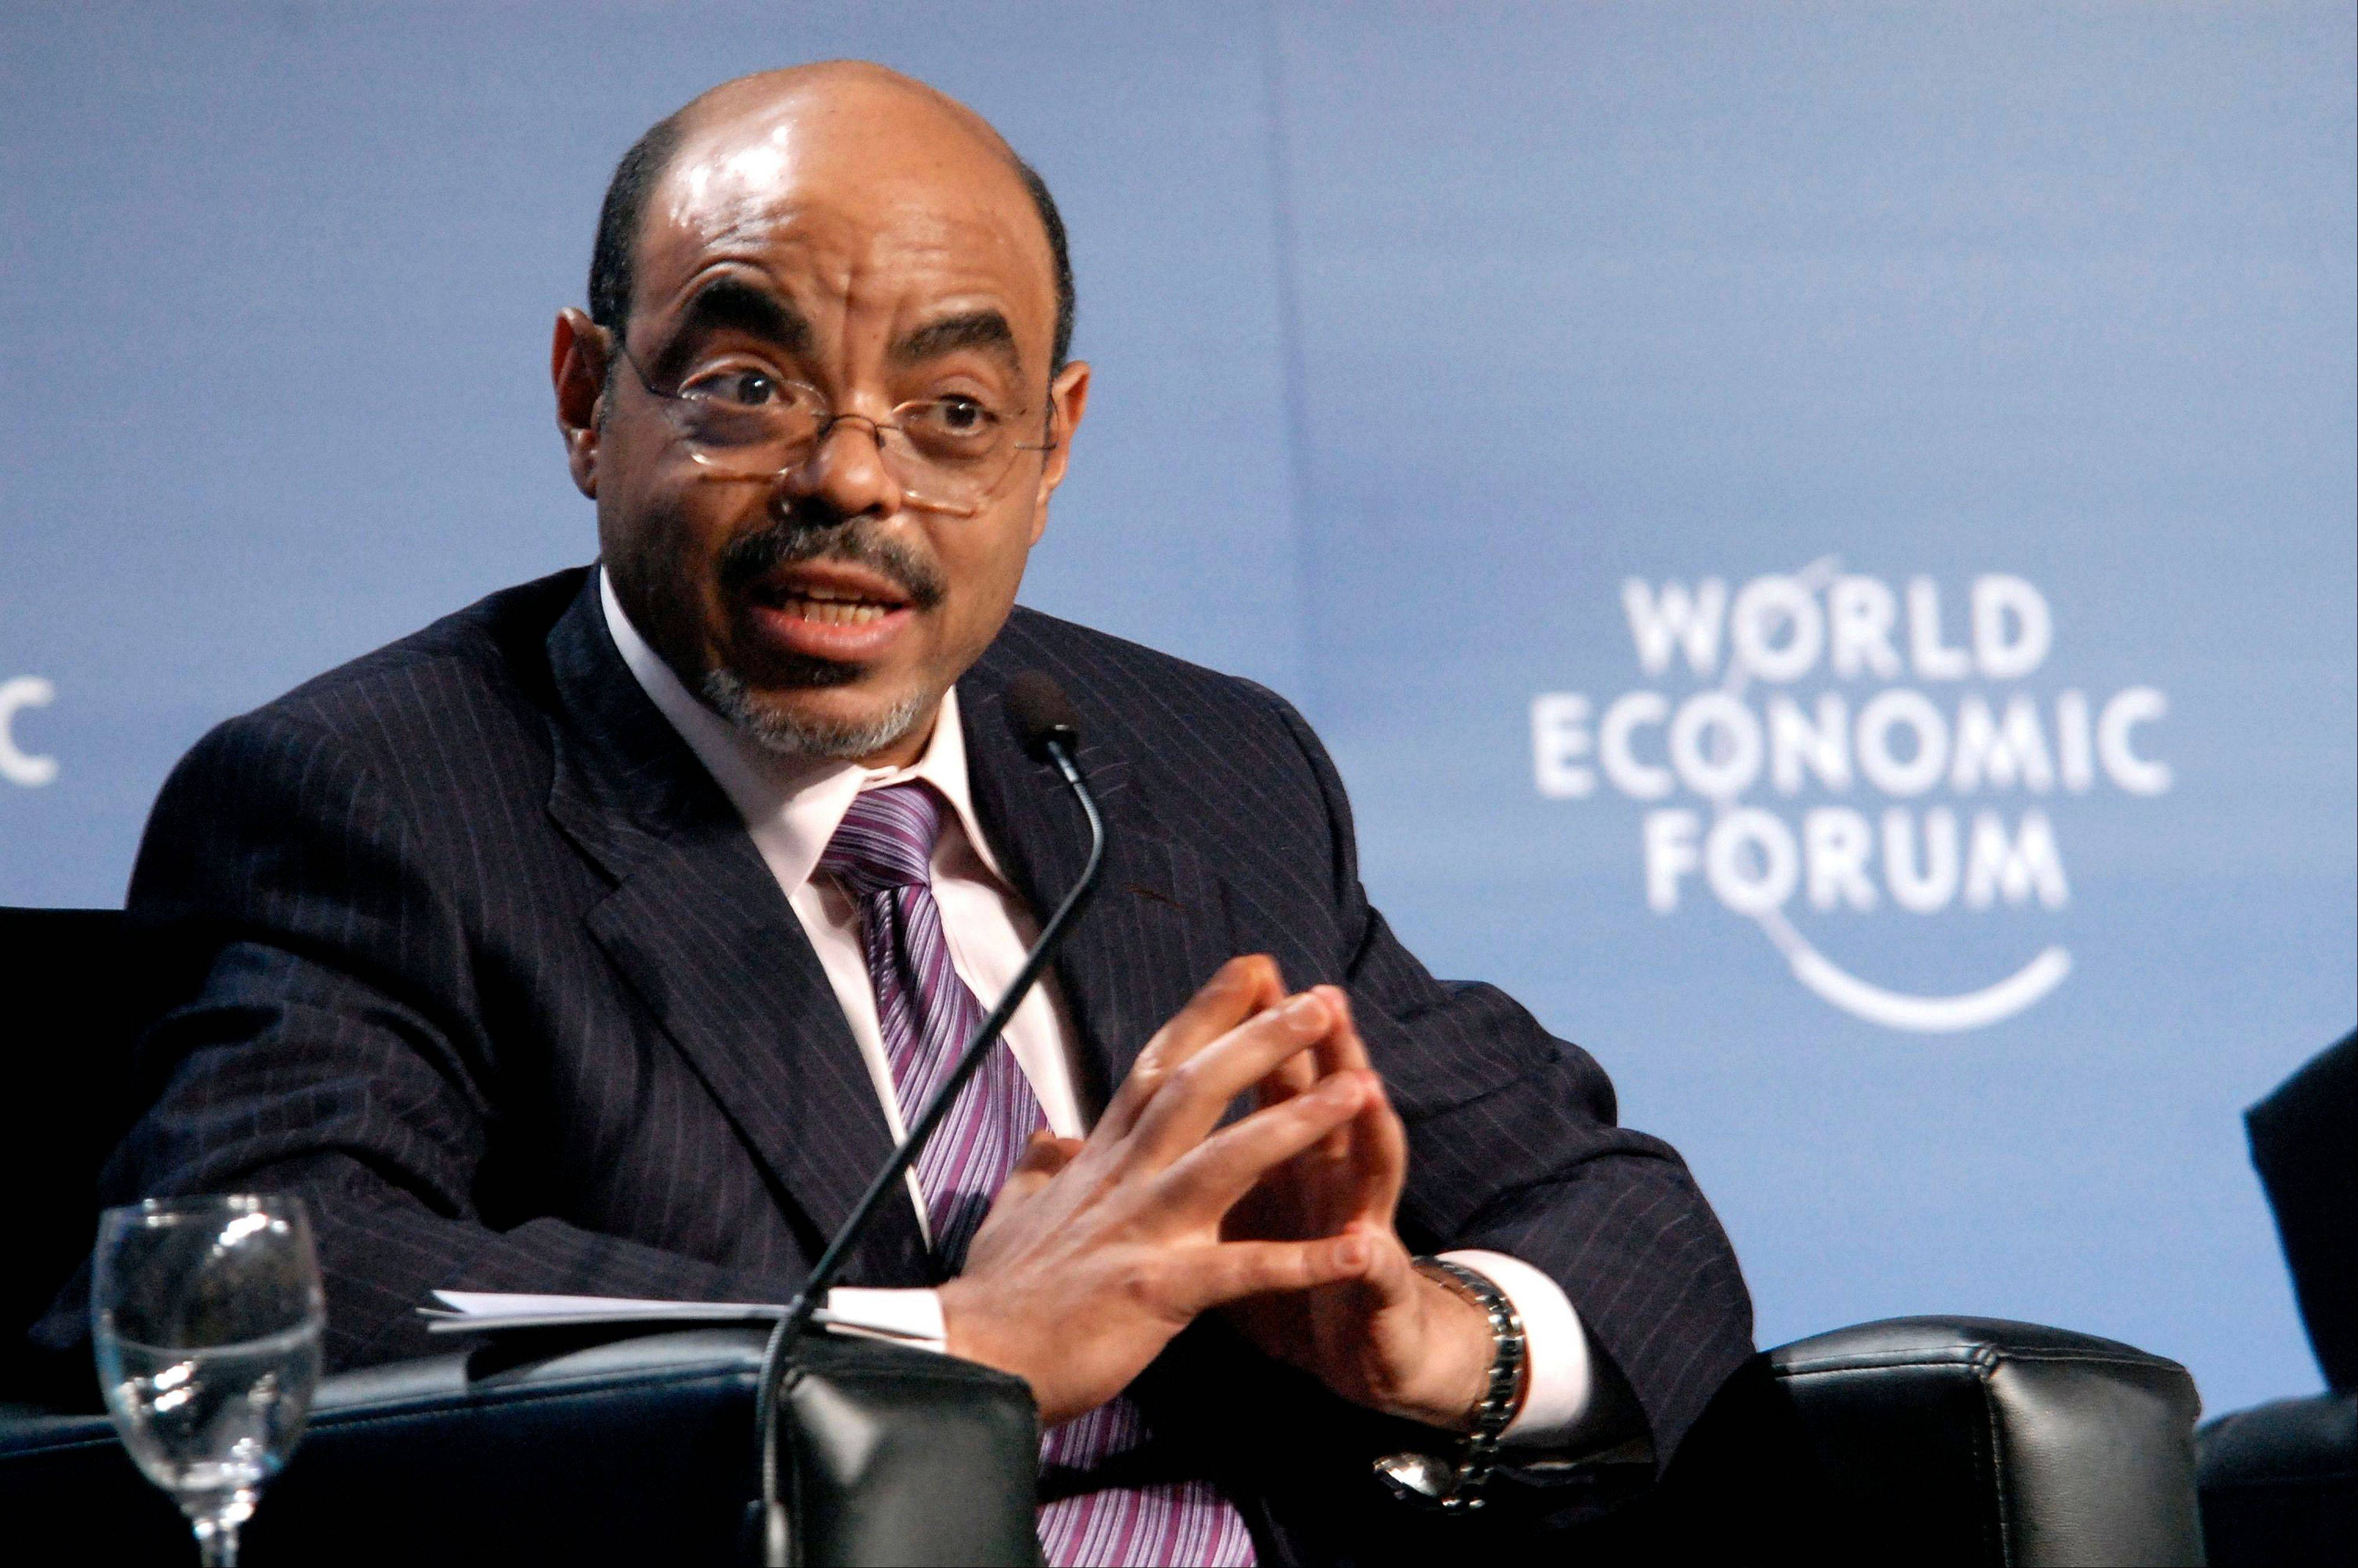 Ethiopian Prime Minister Meles Zenawi died Monday, Aug. 20, 2012 following weeks of illness, Ethiopian State media reported. He was 57.